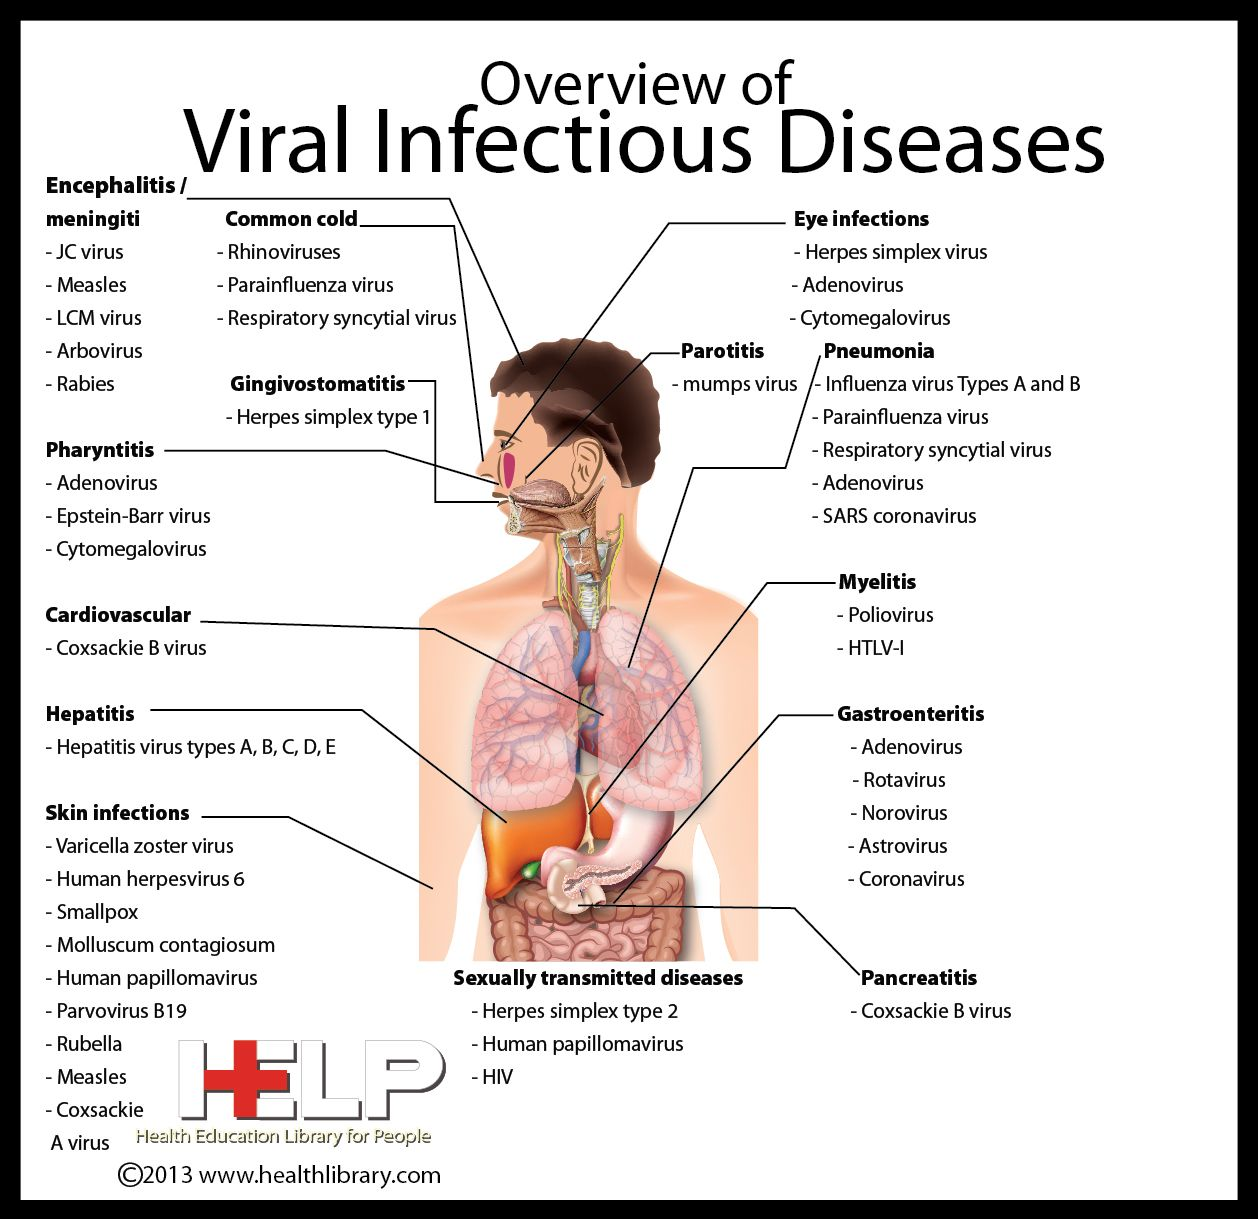 Viral Infectious Diseases